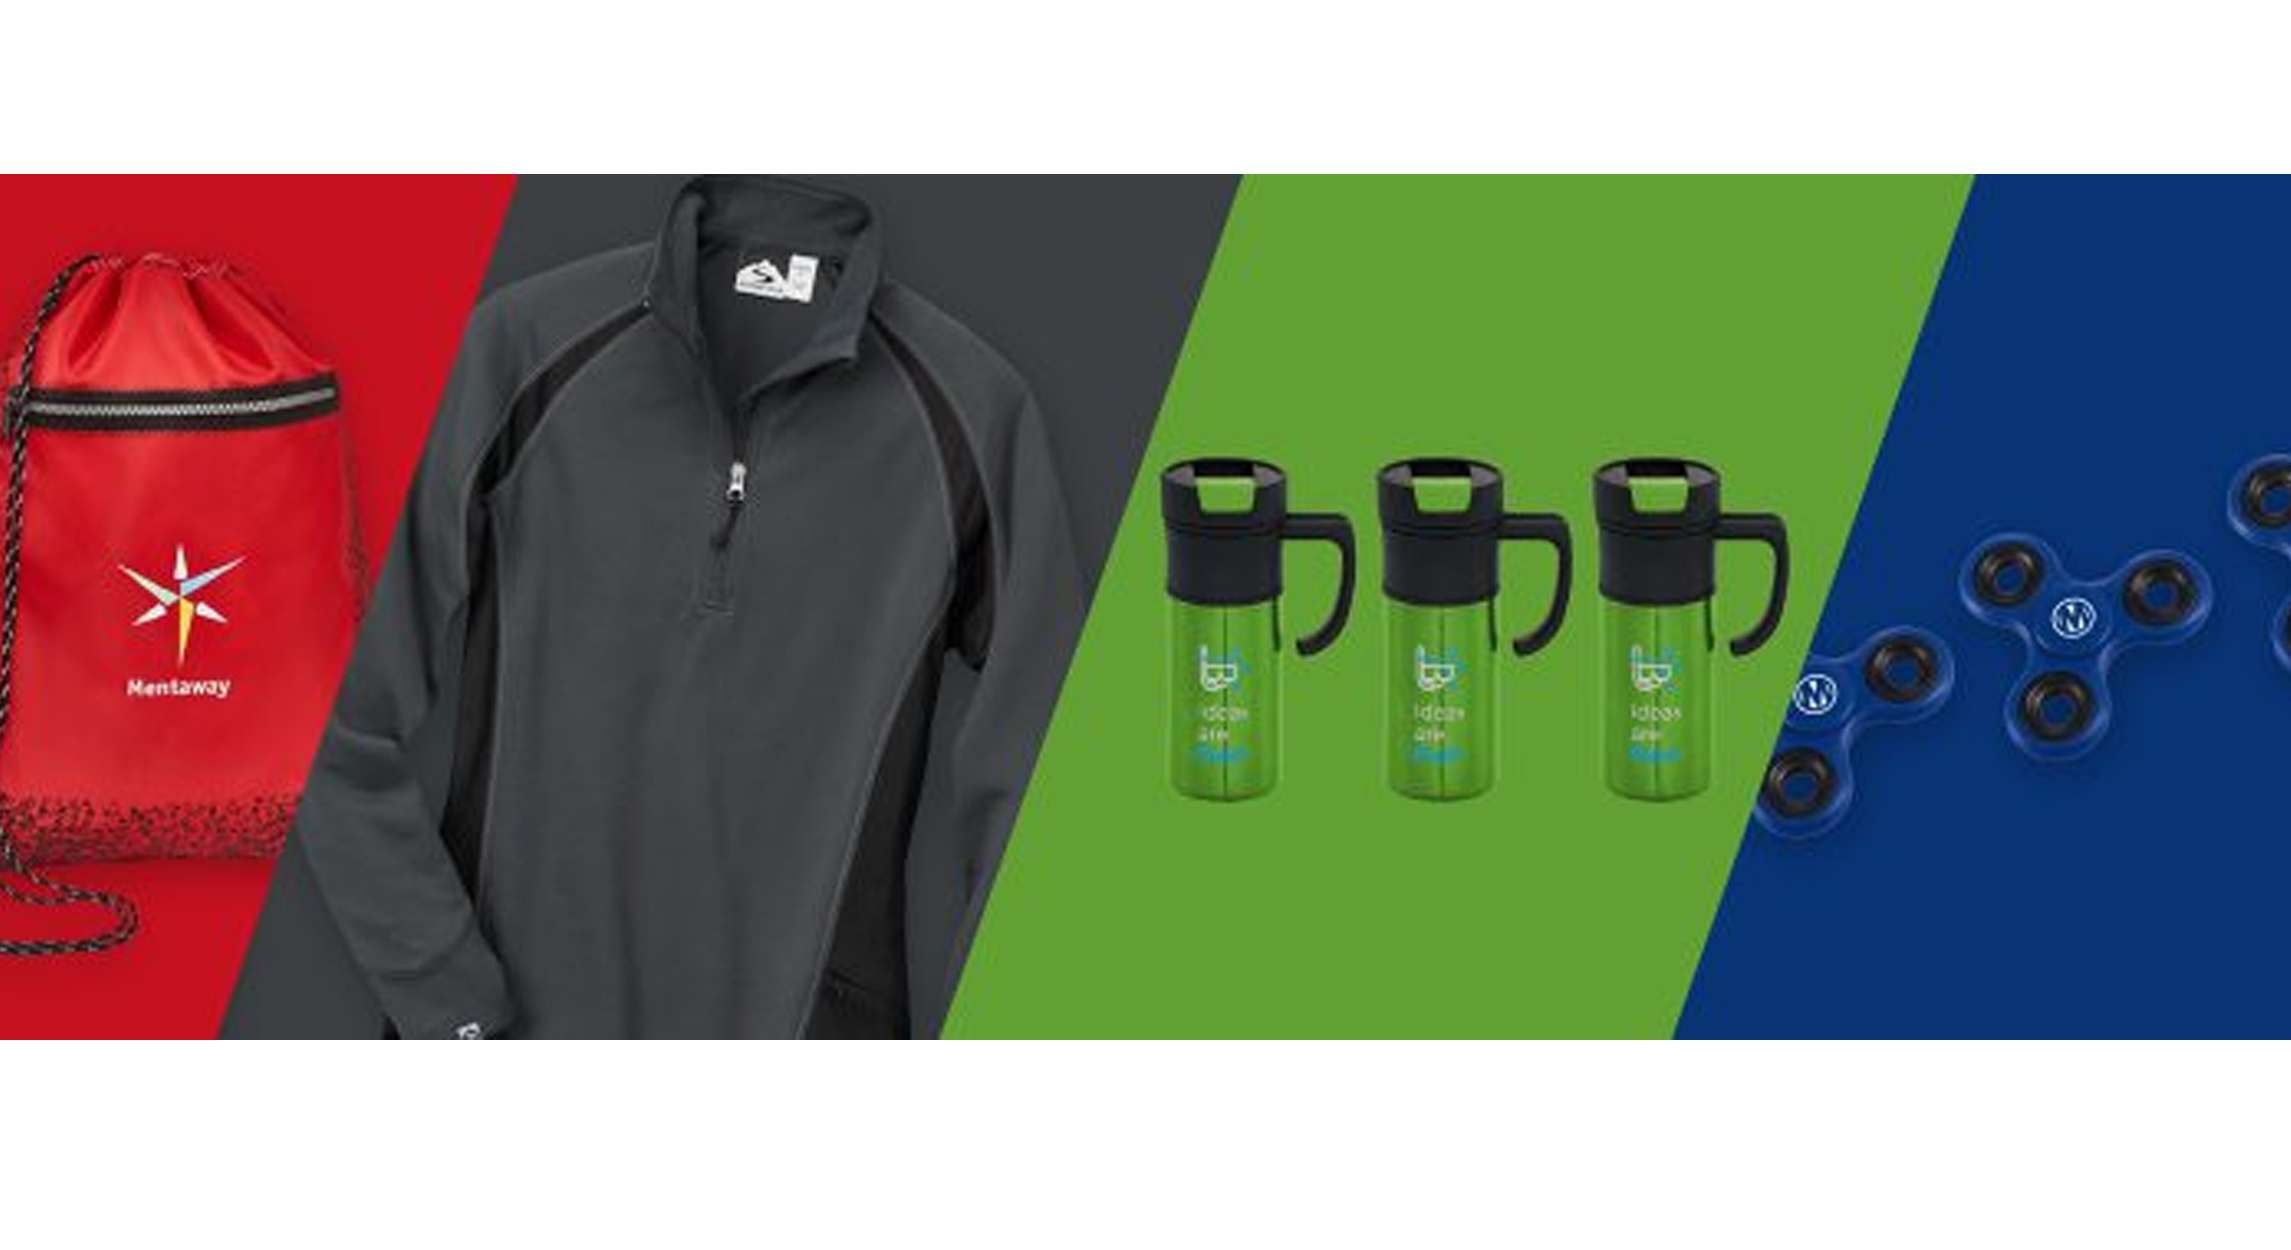 6 Things You're Missing Out on by Not Using Promotional Products